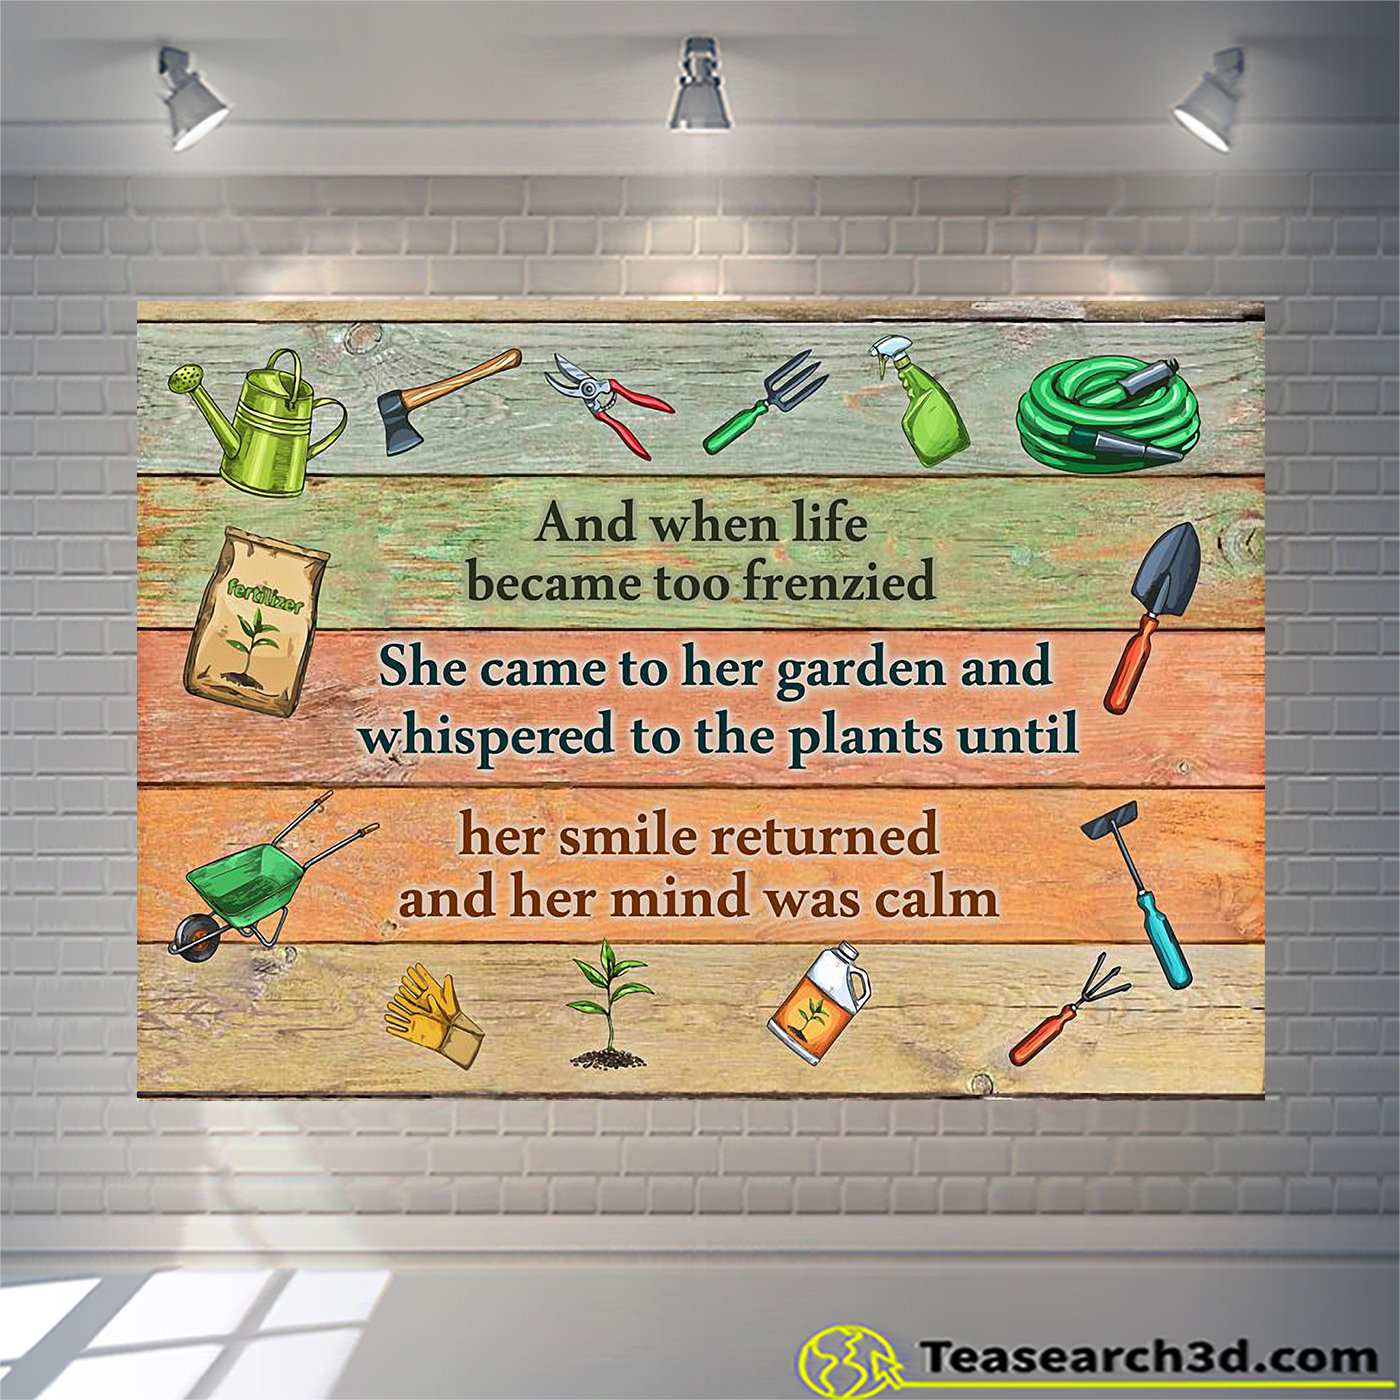 Gardening and when life became too frenzied poster A1